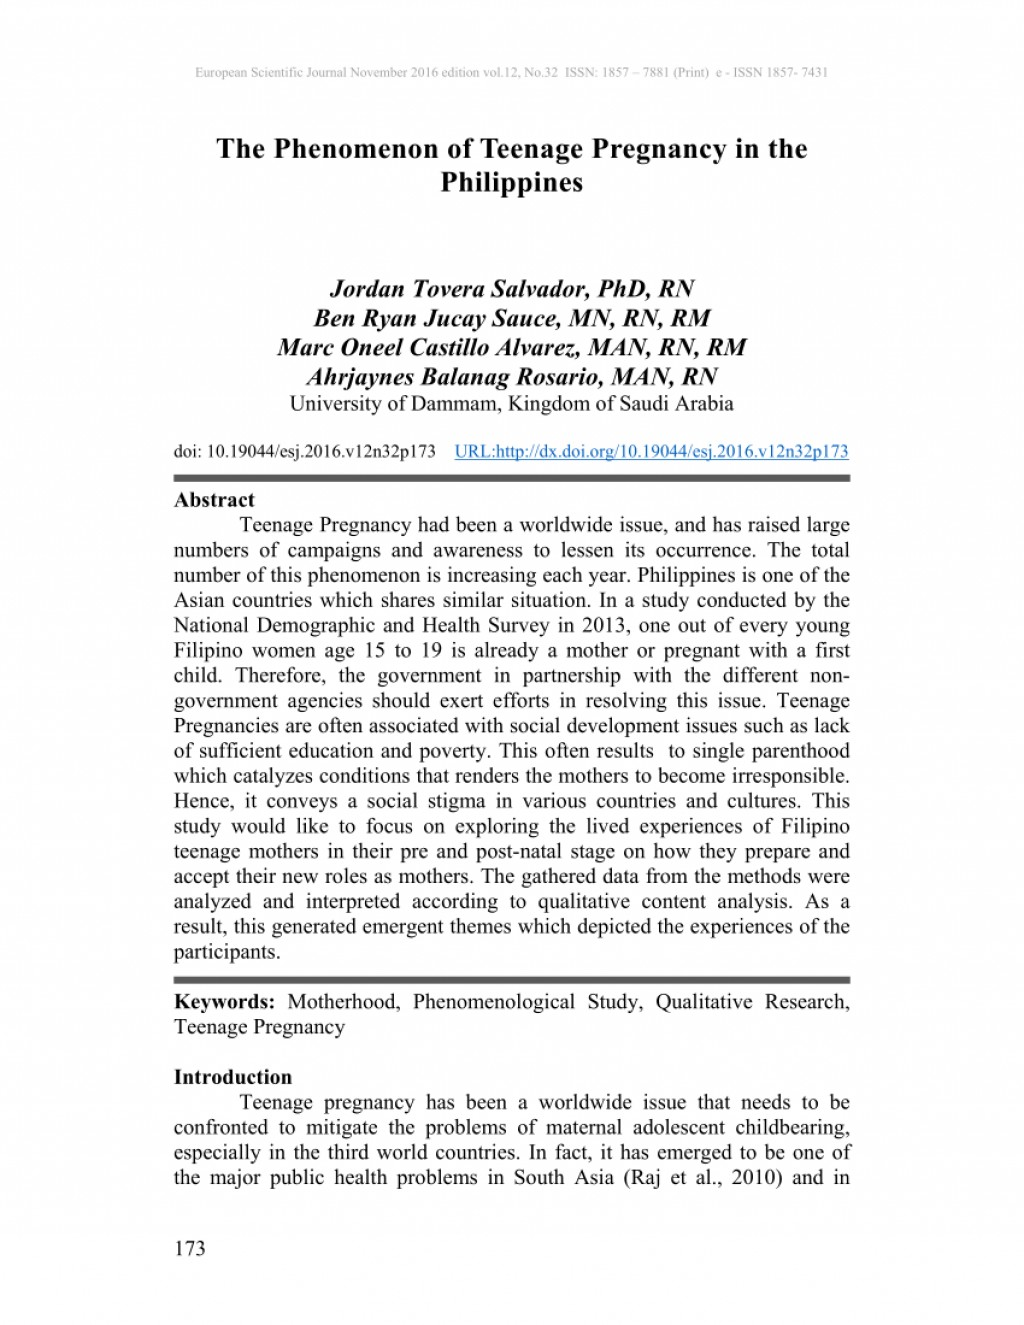 001 Introduction Of Research Paper About Teenage Pregnancy In The Philippines Wondrous A Large